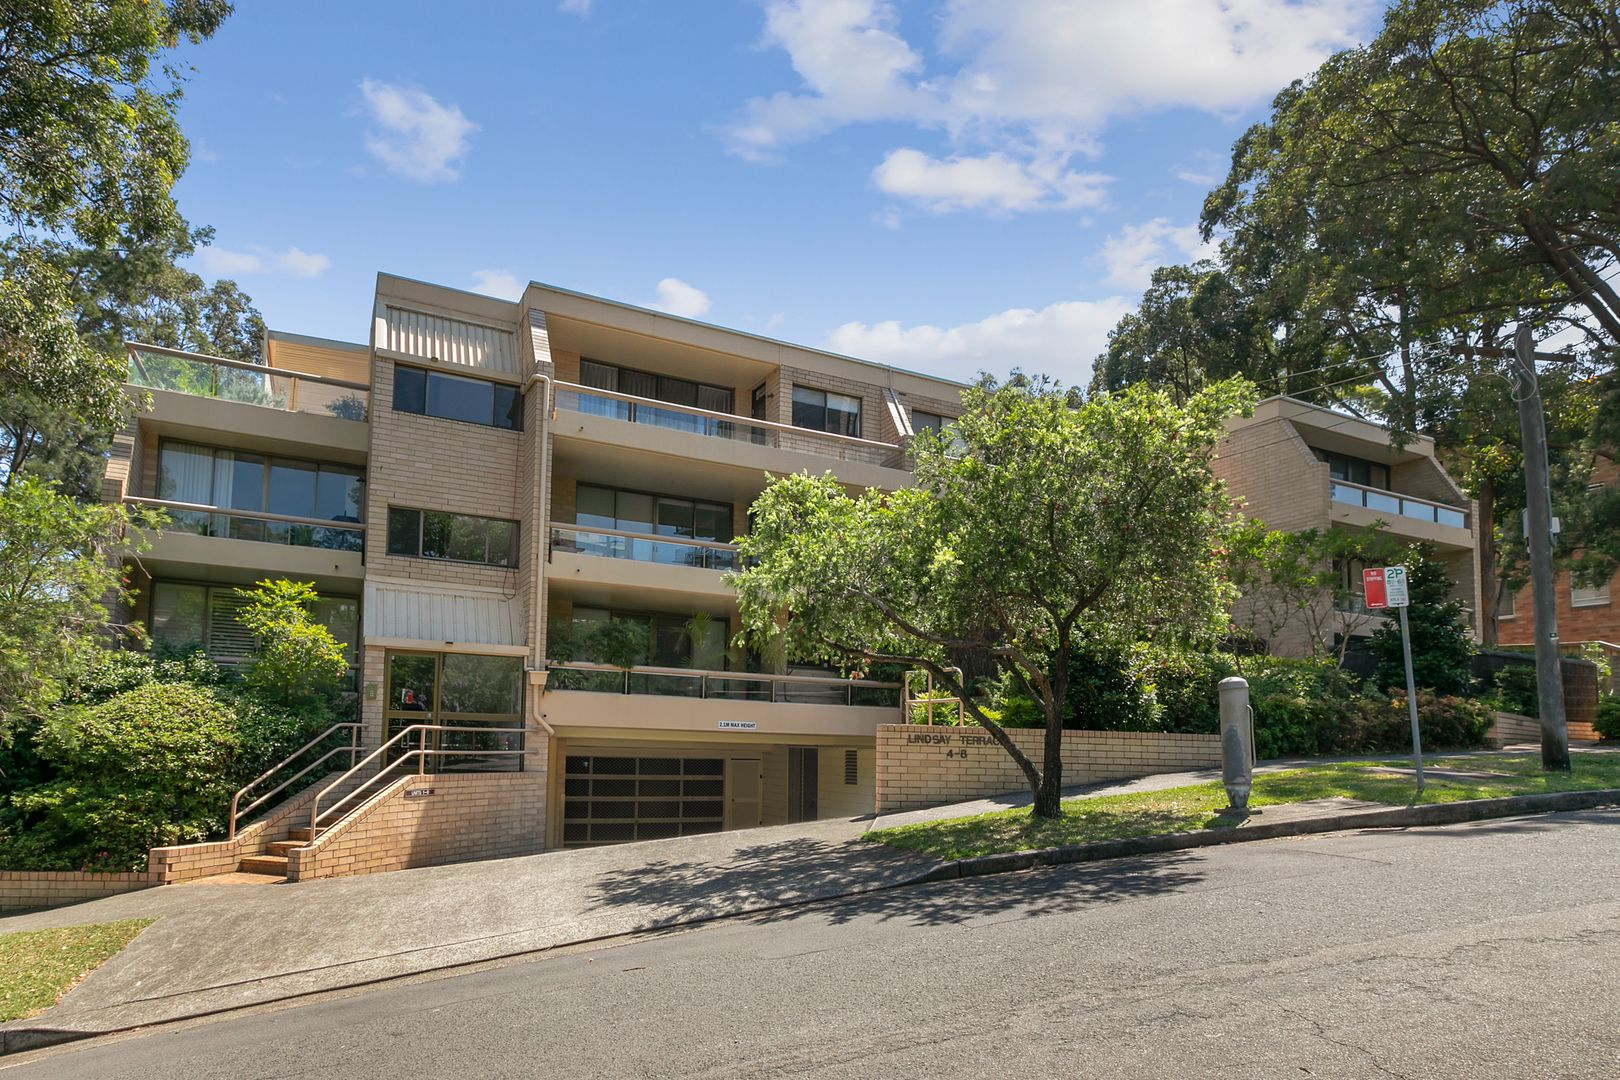 18/4 Lindsay Street, Neutral Bay NSW 2089, Image 0